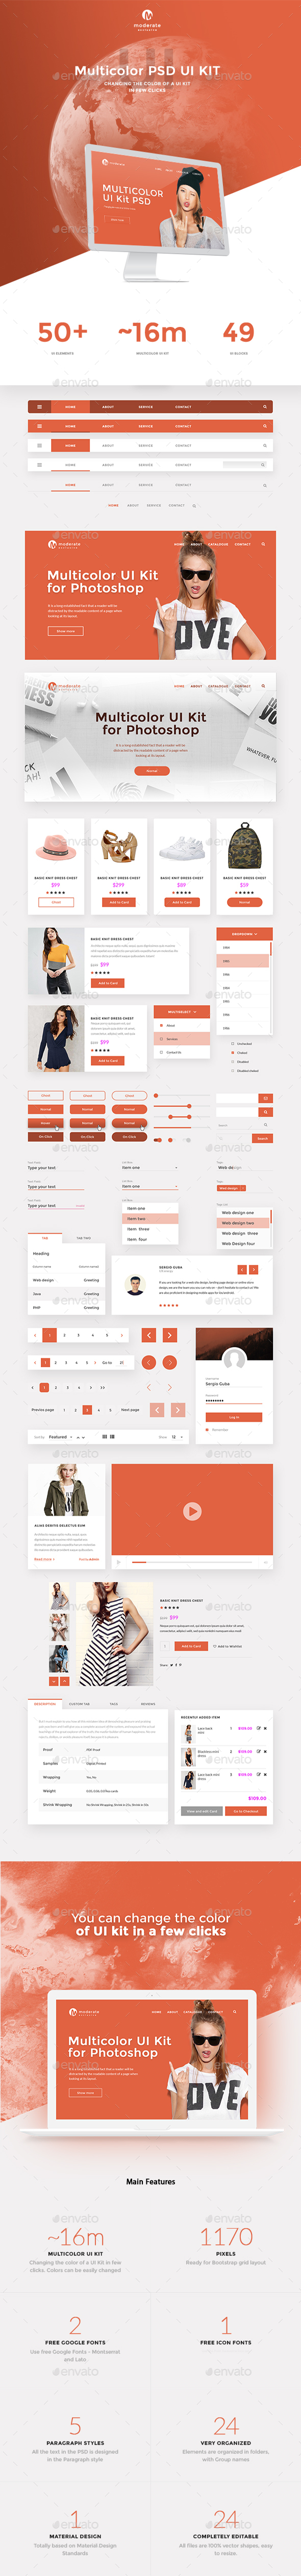 psd , ui , free , ux ,freebie , news , kit , free ui kit , ui news kit ,free psd